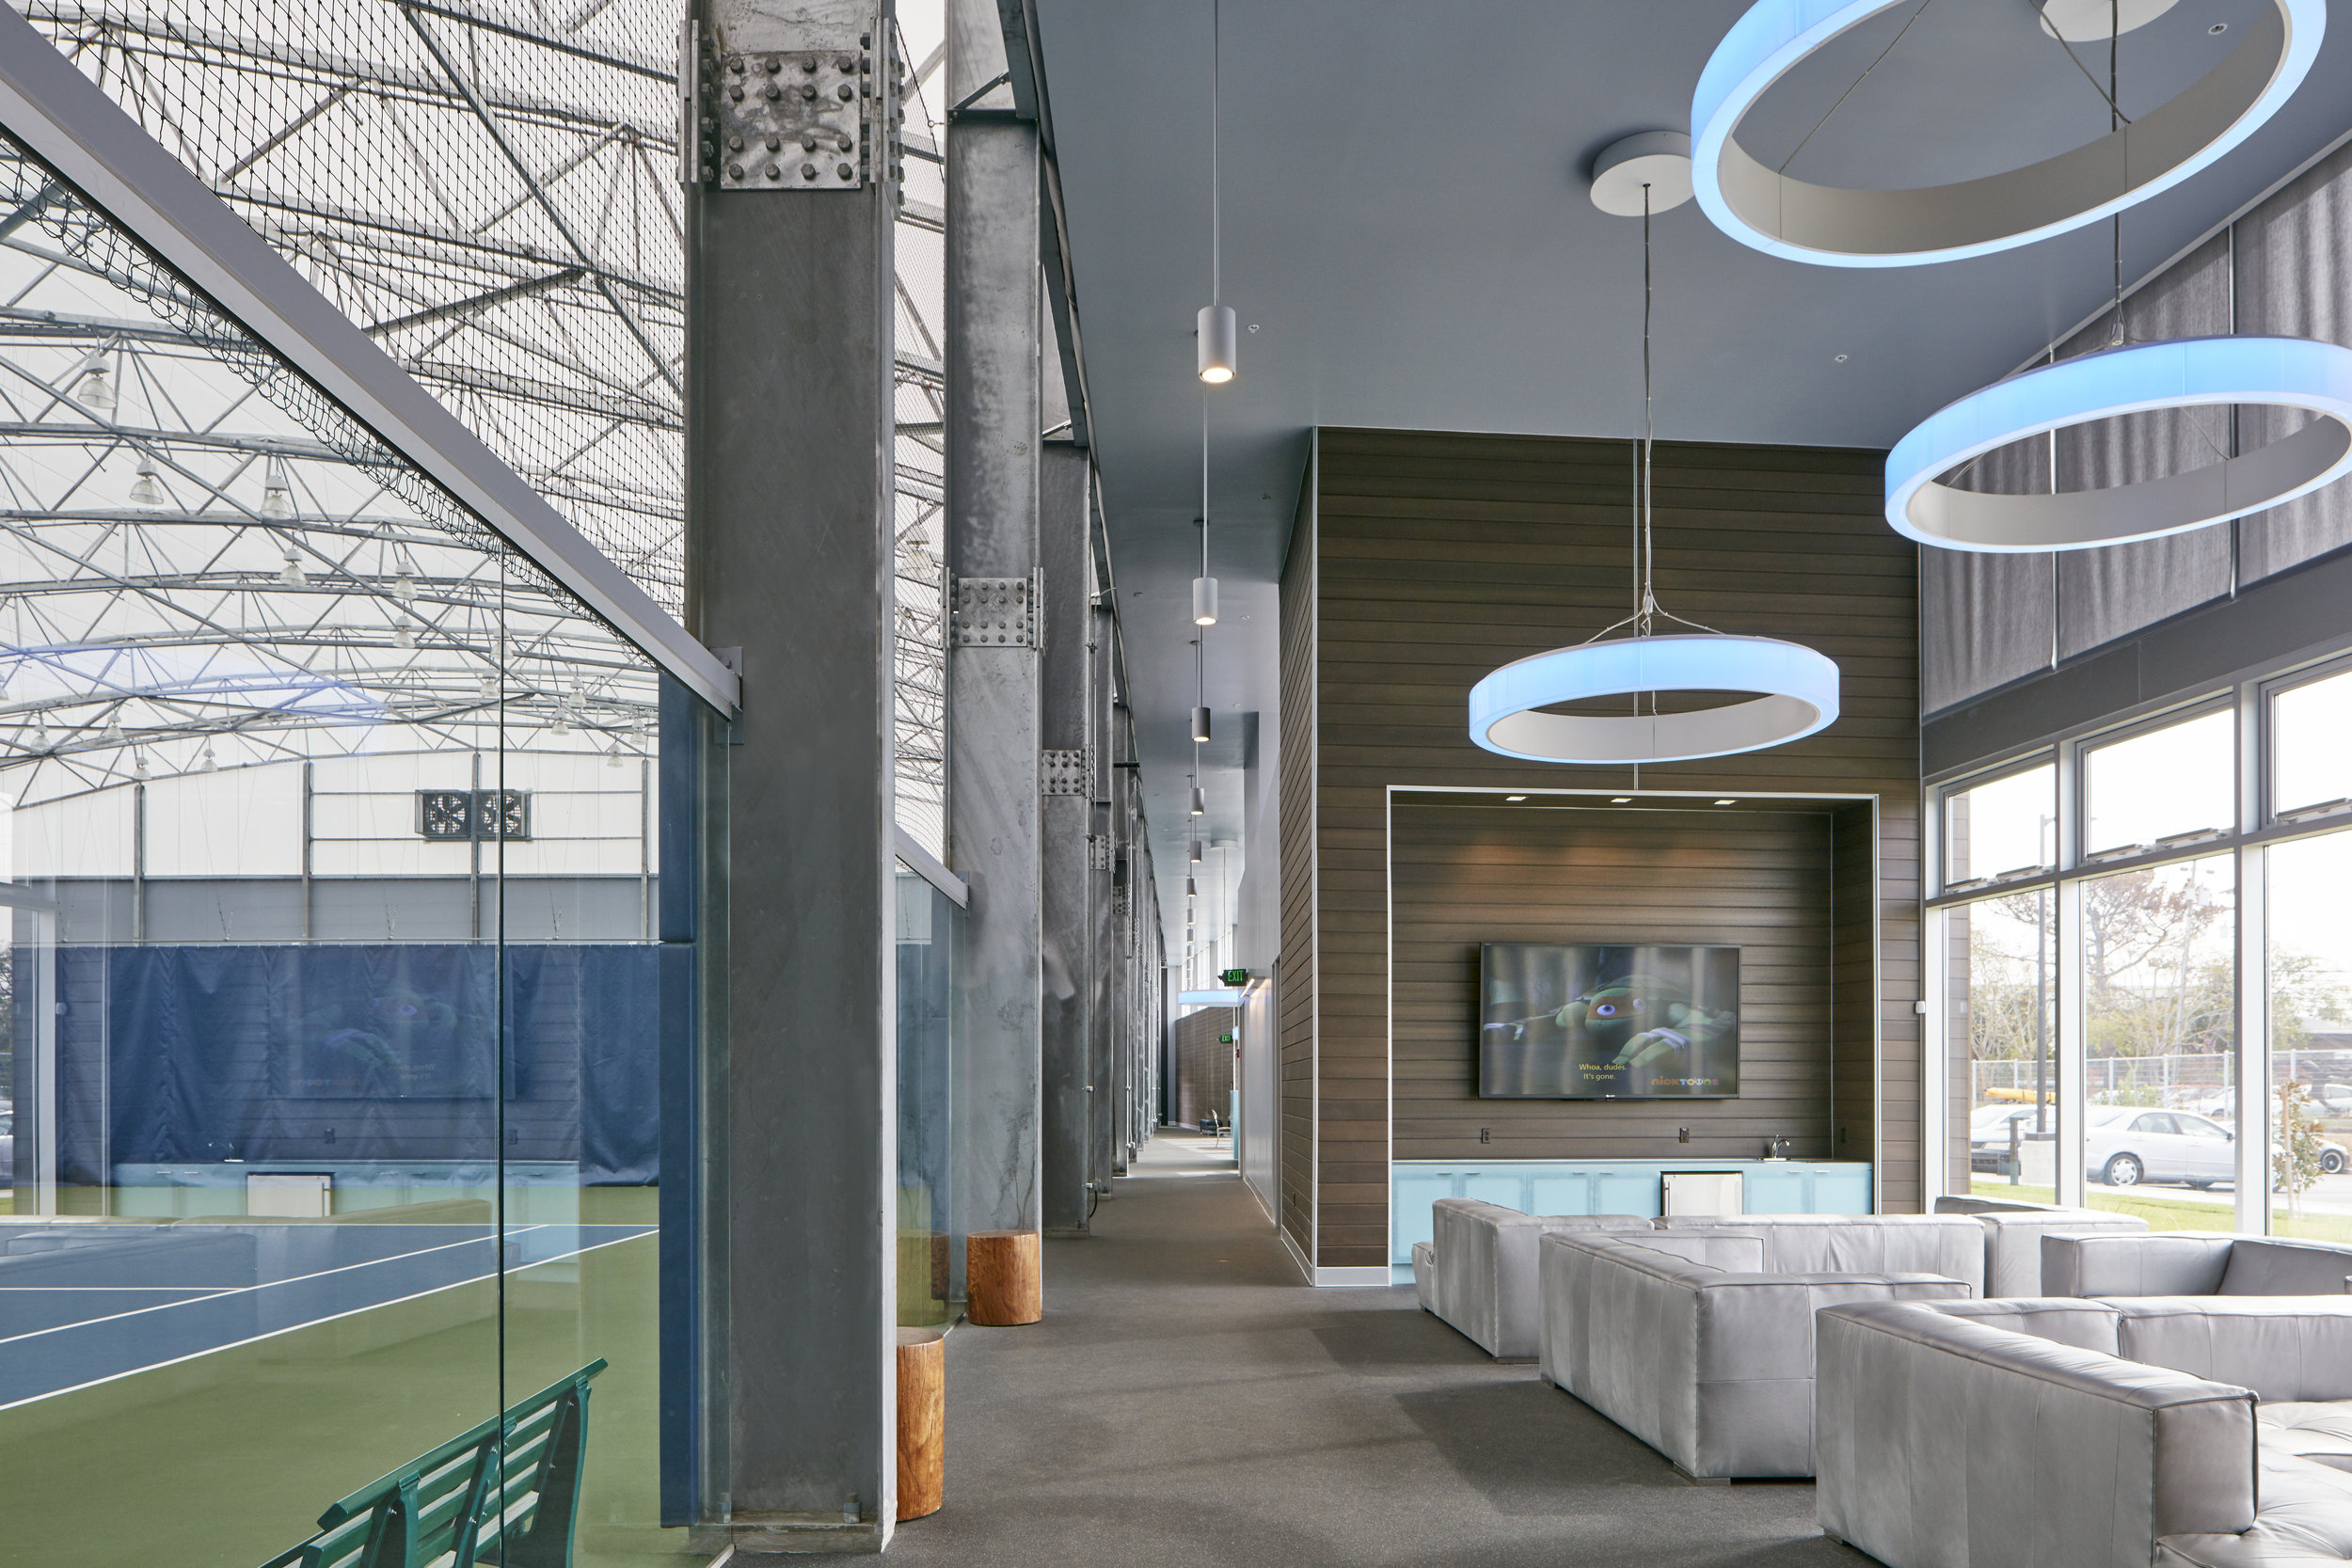 Swatt_Miers_Broadway_Tennis_Center-10 (2).jpg